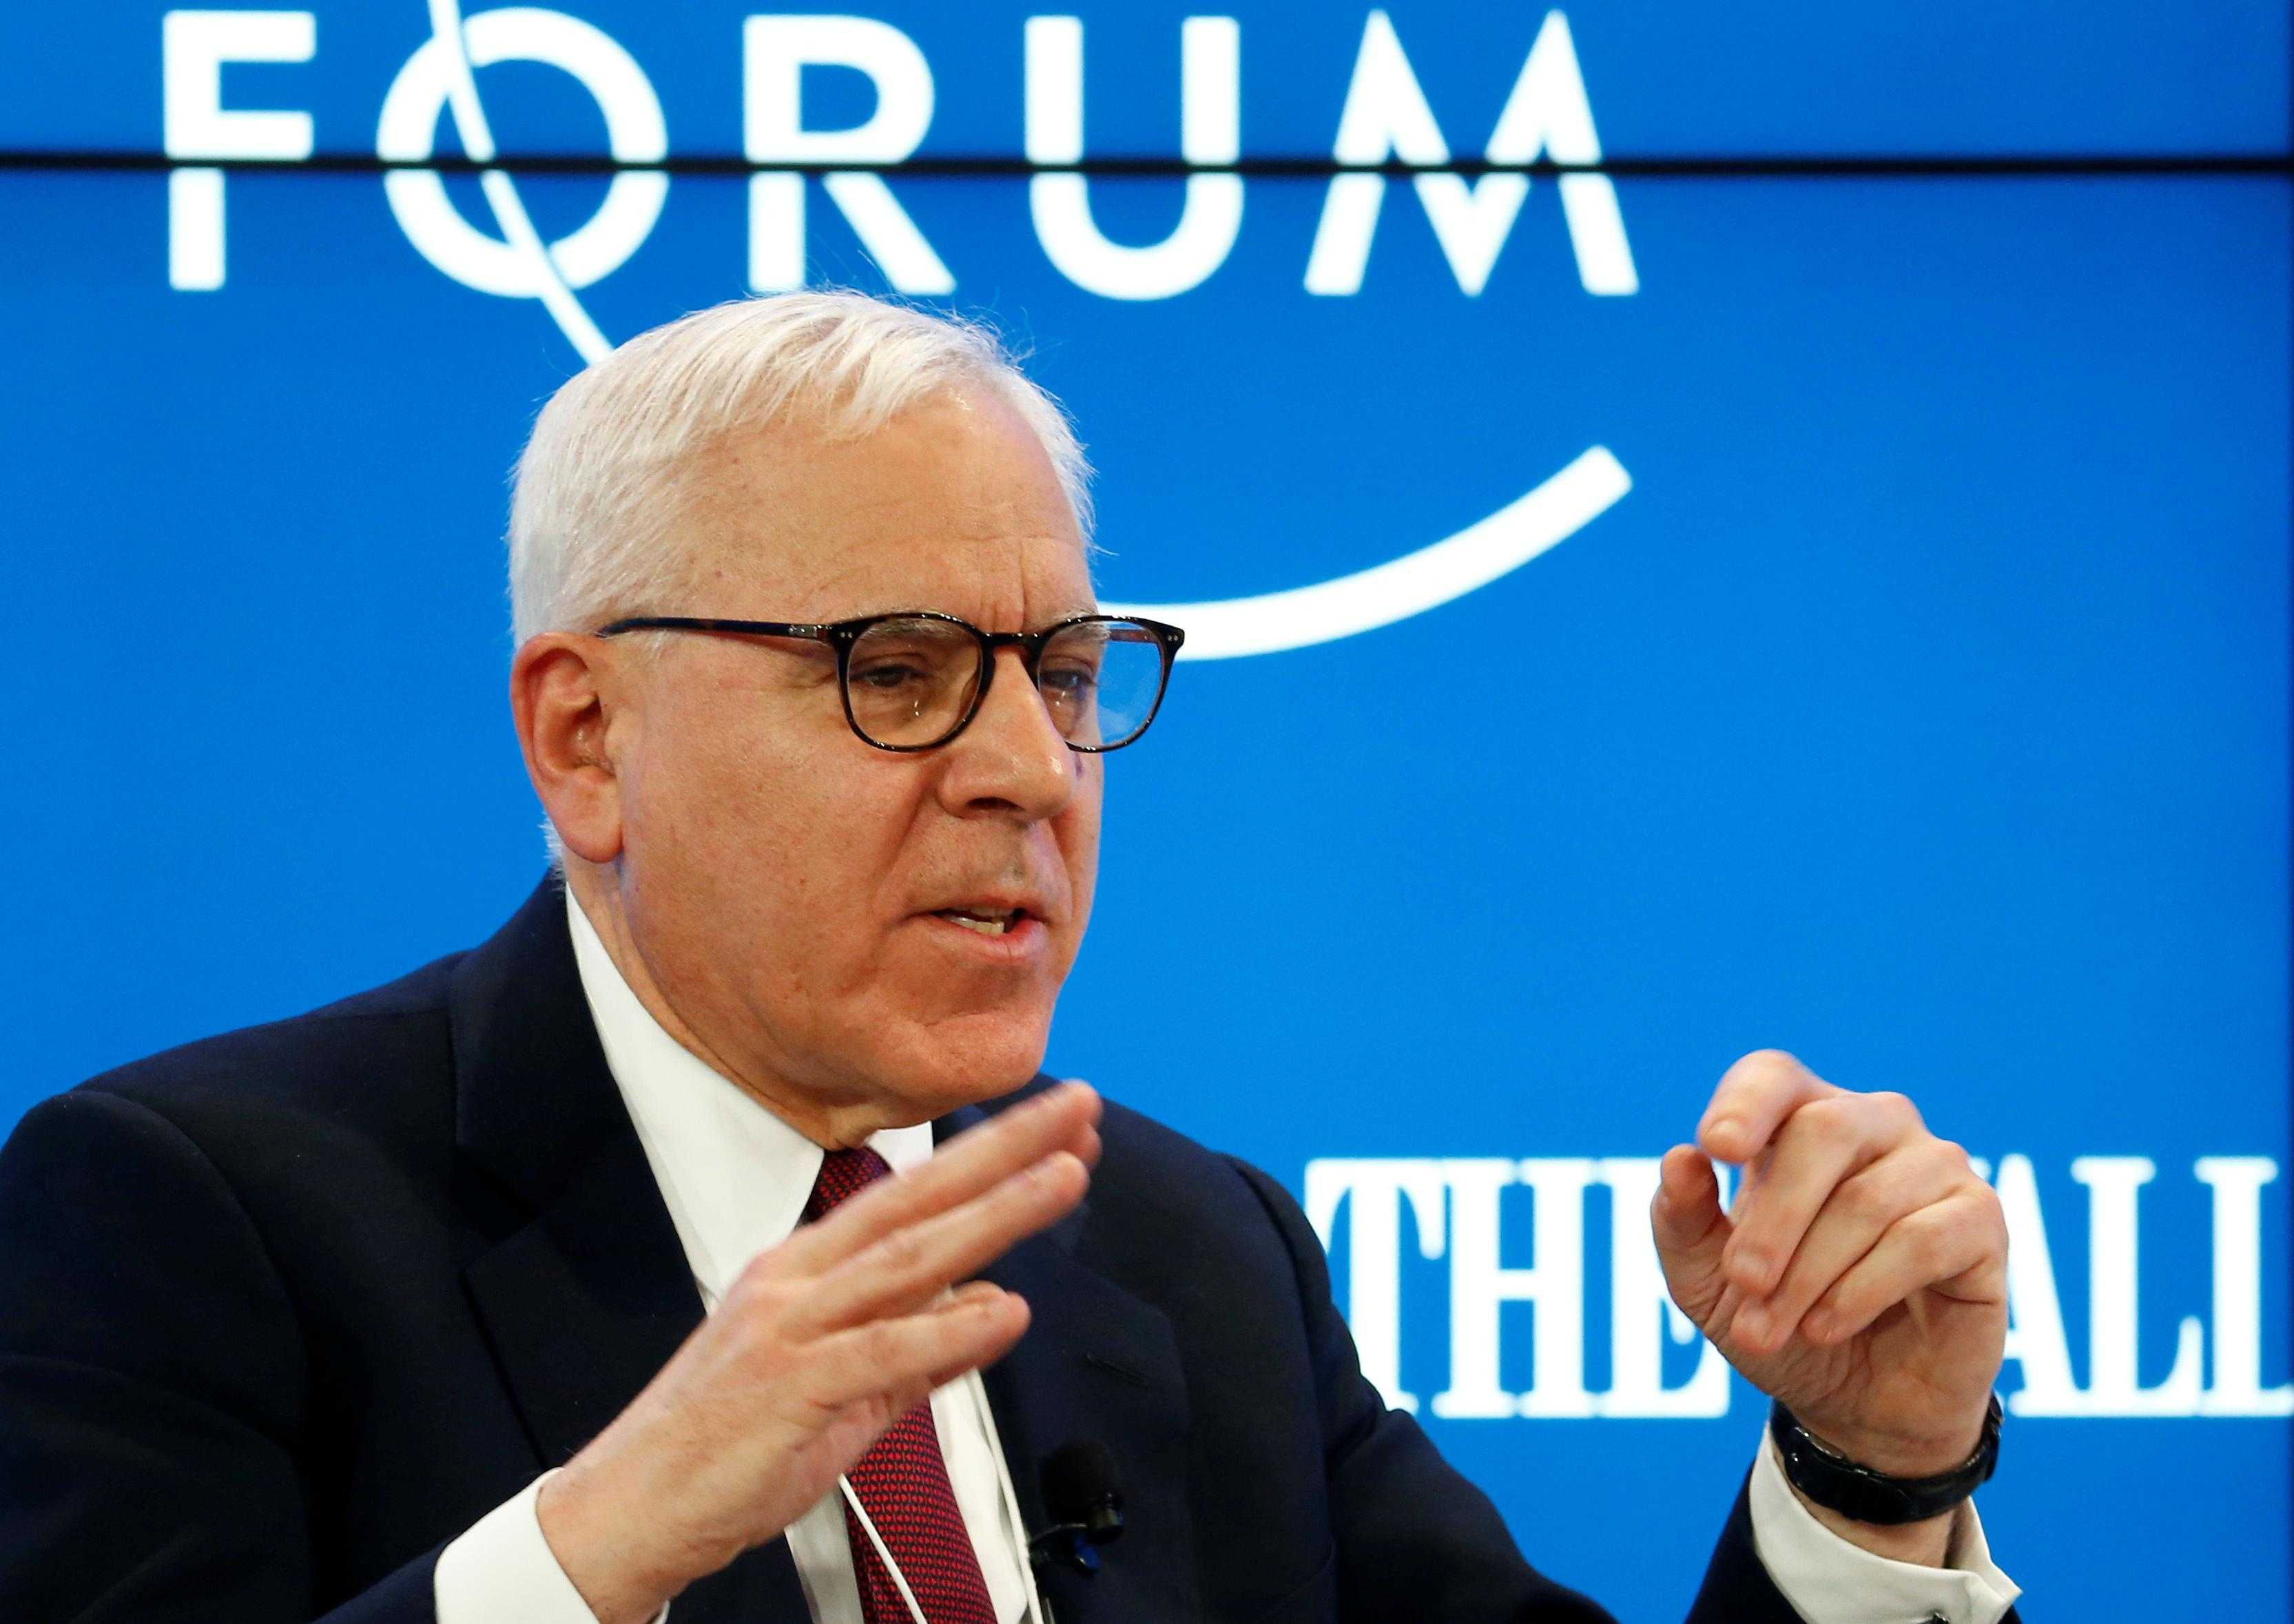 Carlyle looking at 'relatively cheap' energy assets: Rubenstein